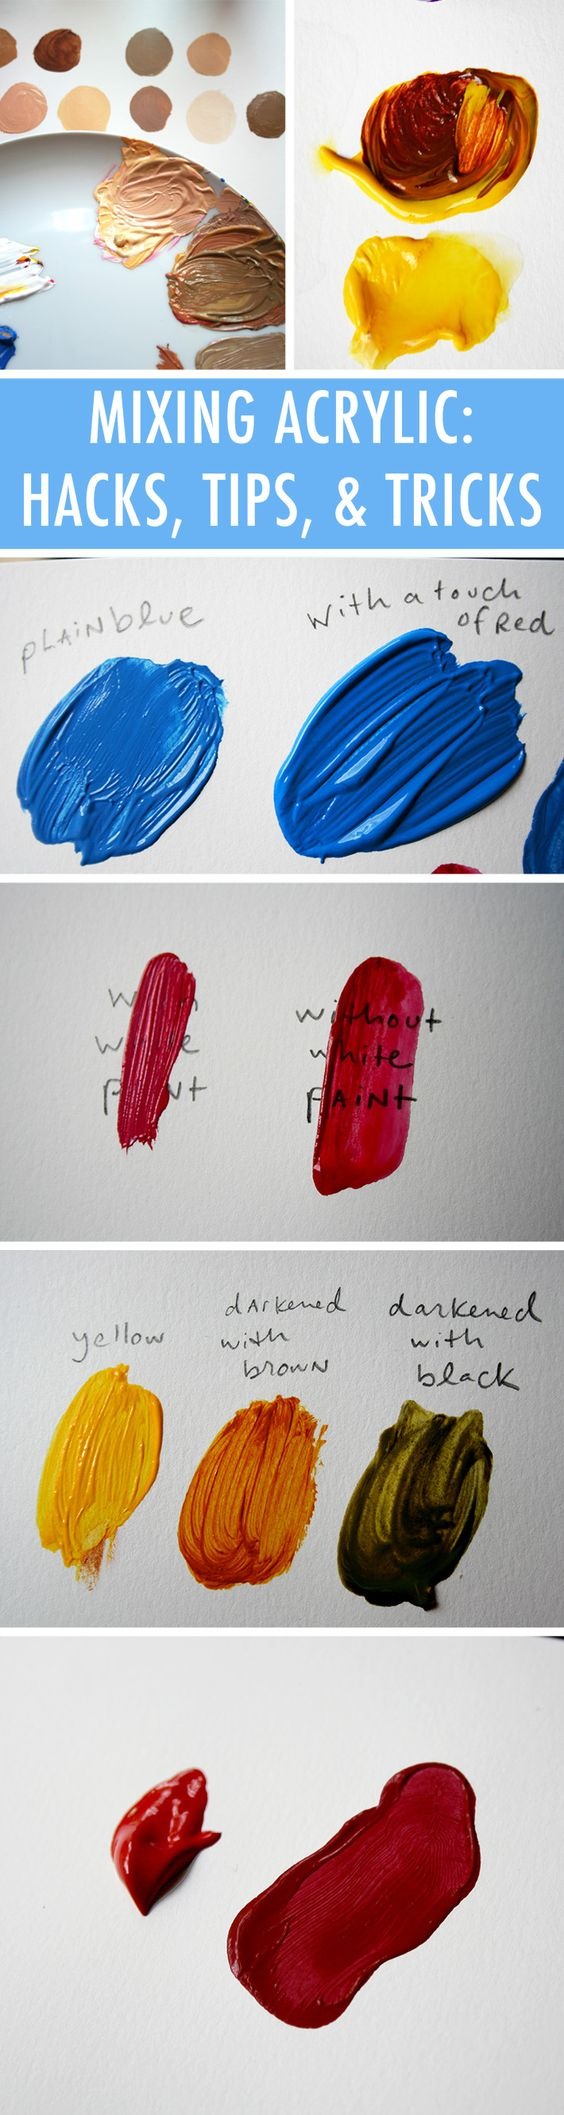 How to mix acrylic paint 11 tips tricks paint for Tips for using acrylic paint